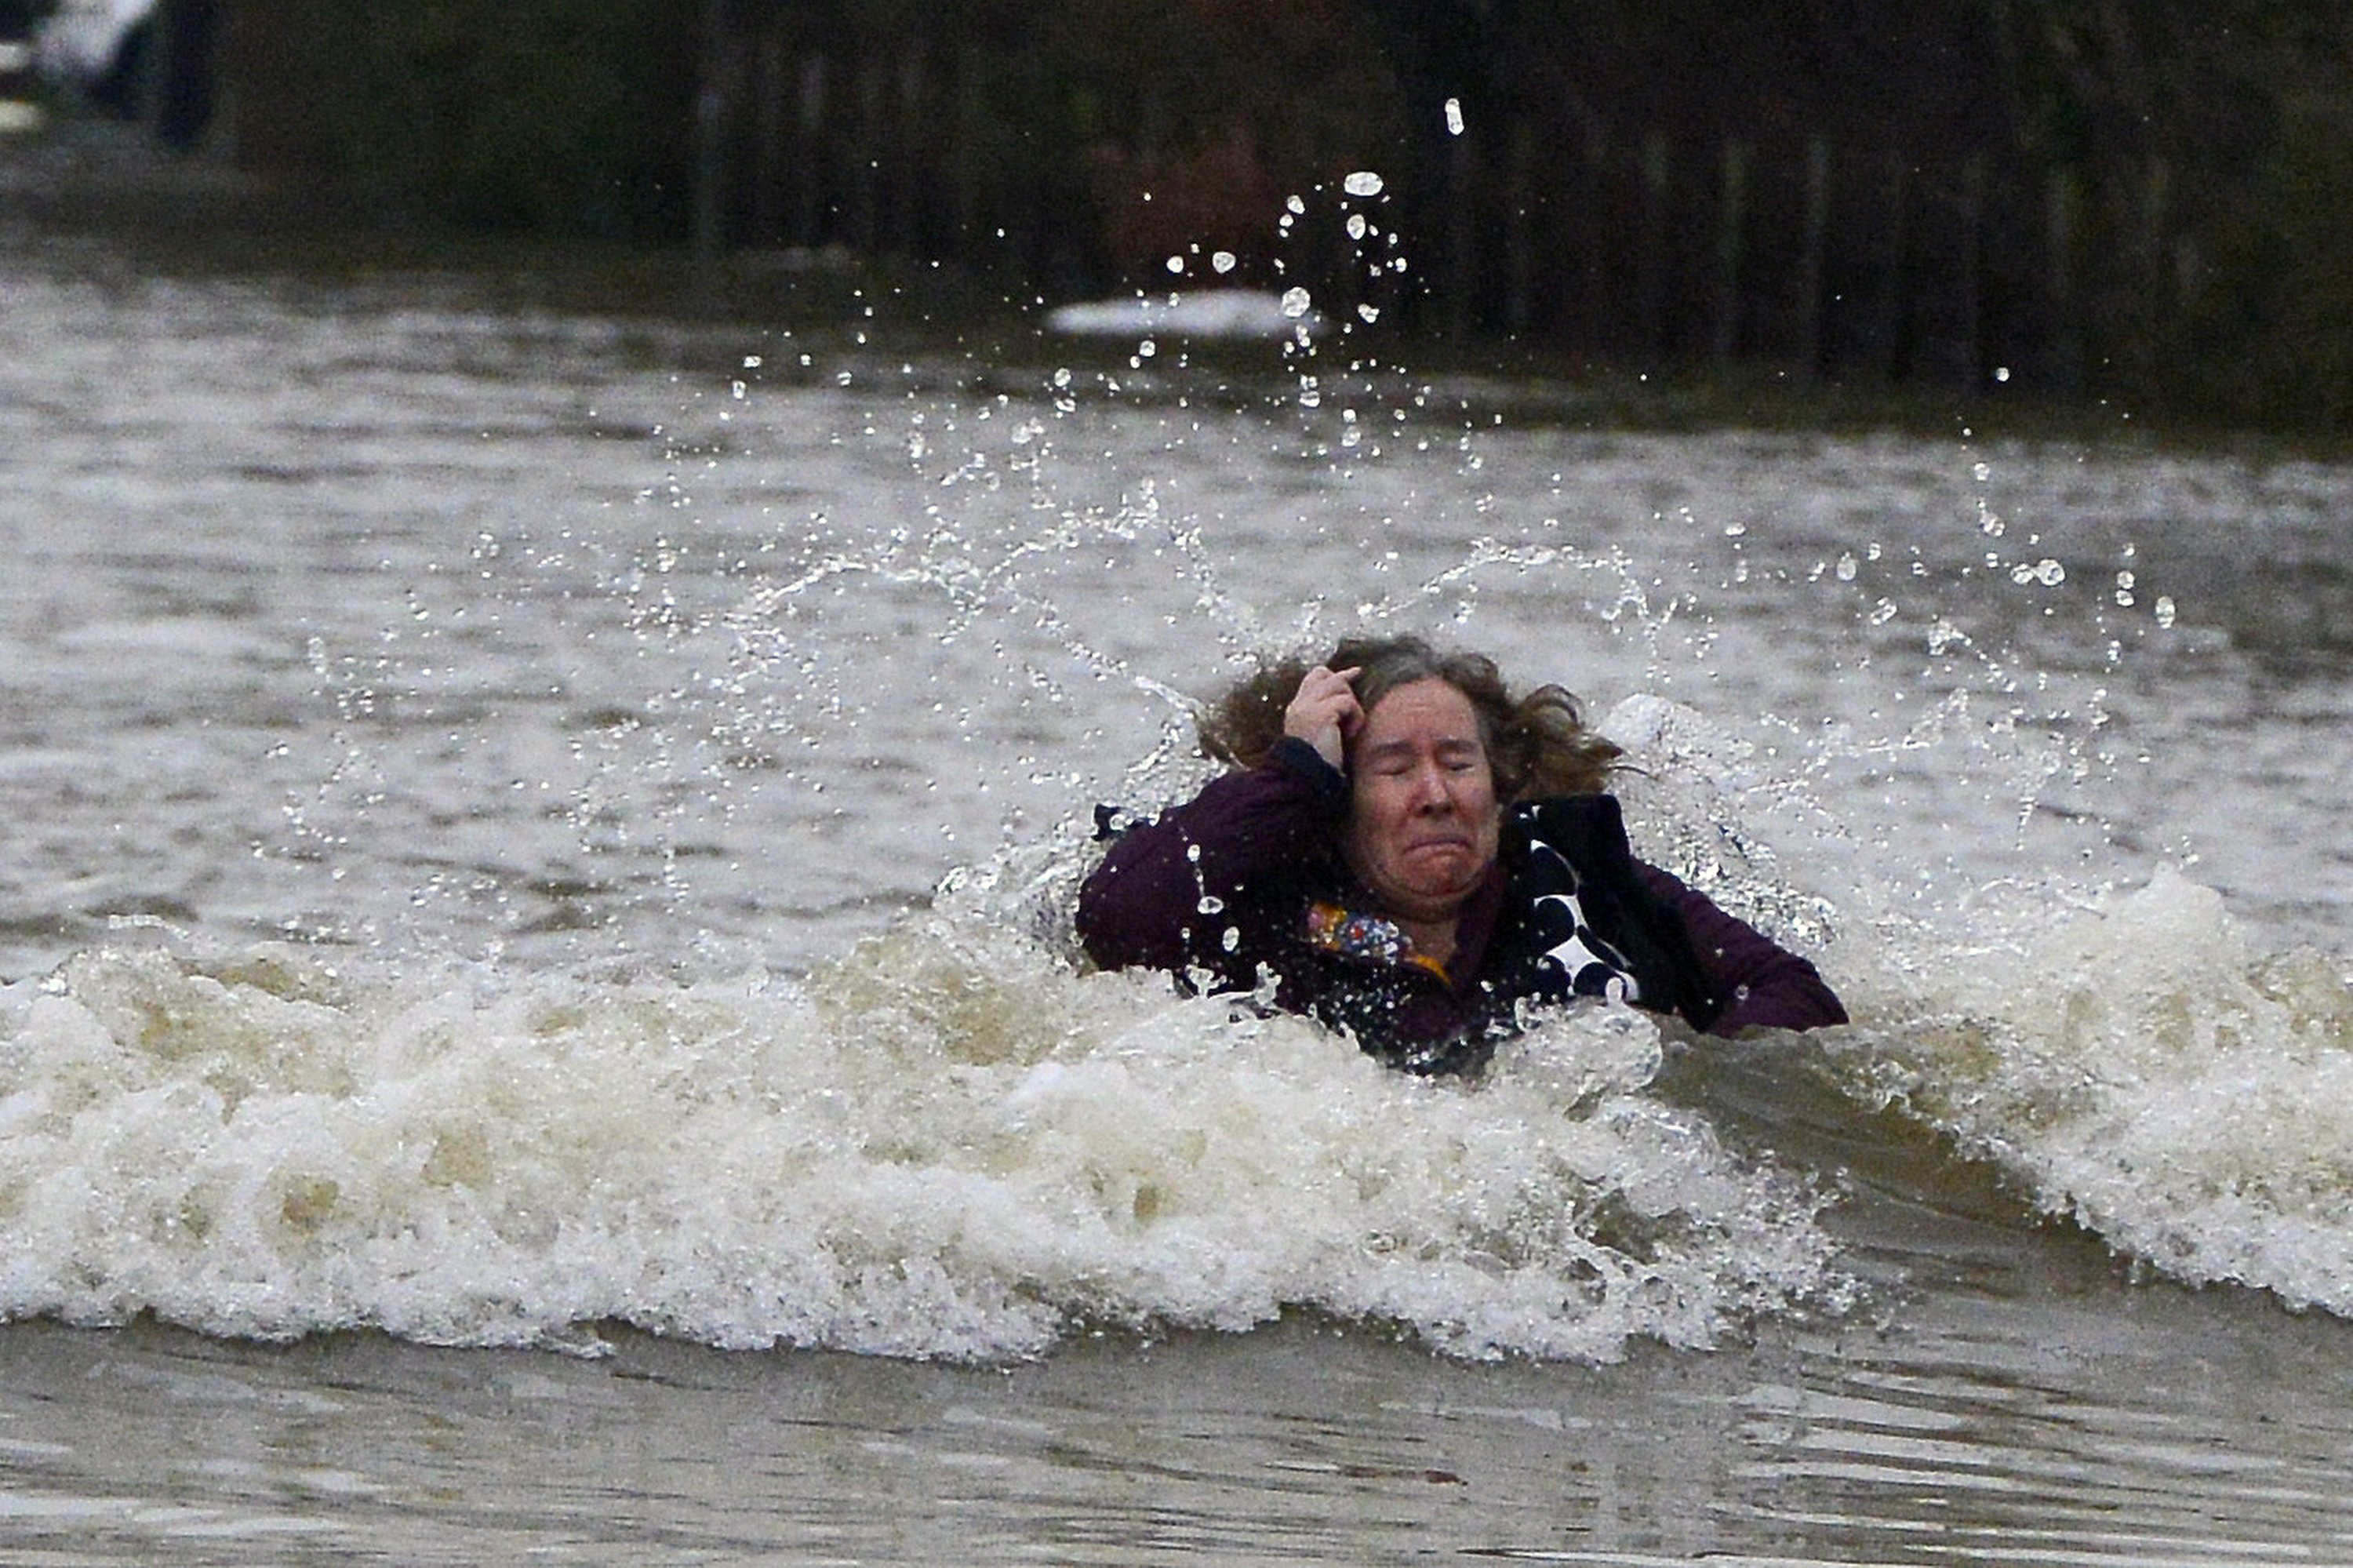 A woman becomes caught up in a lorries wash during flooding, Feb. 10, 2014, in Old Windsor in Berkshire  after the River Thames burst its banks.